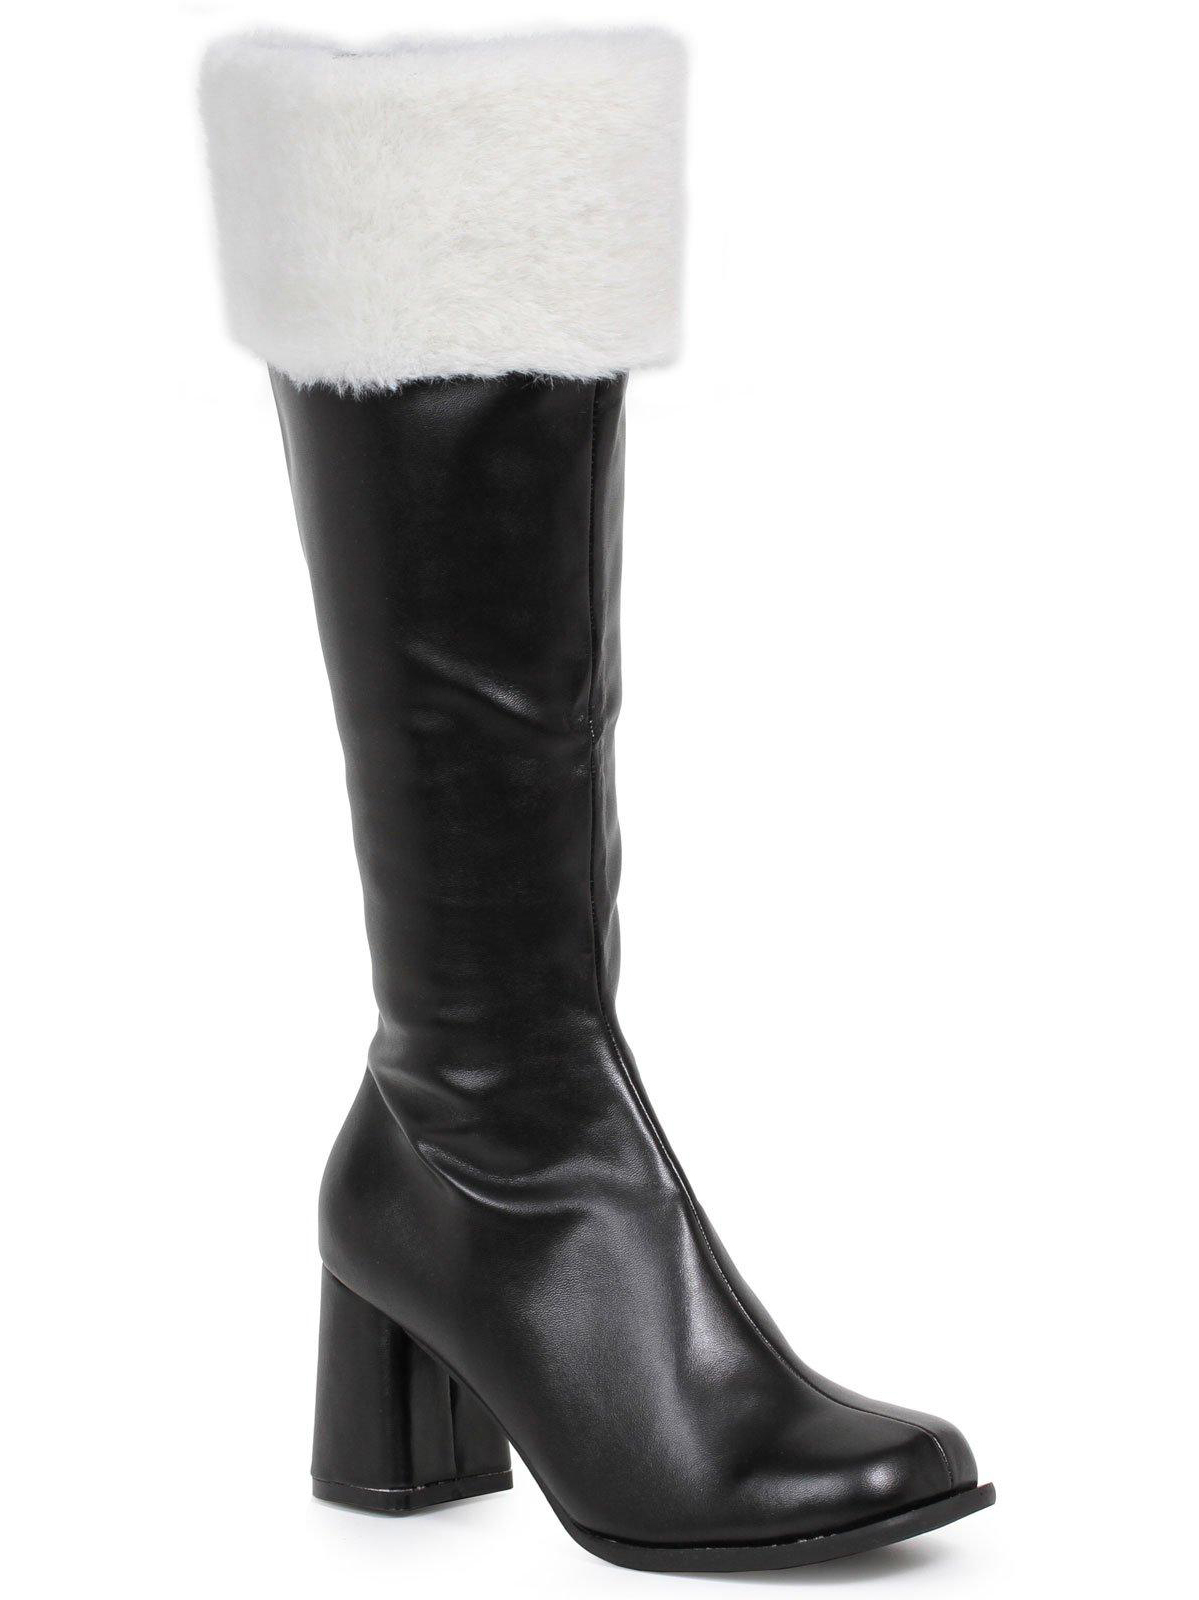 Black Gogo Boots With Faux Fur